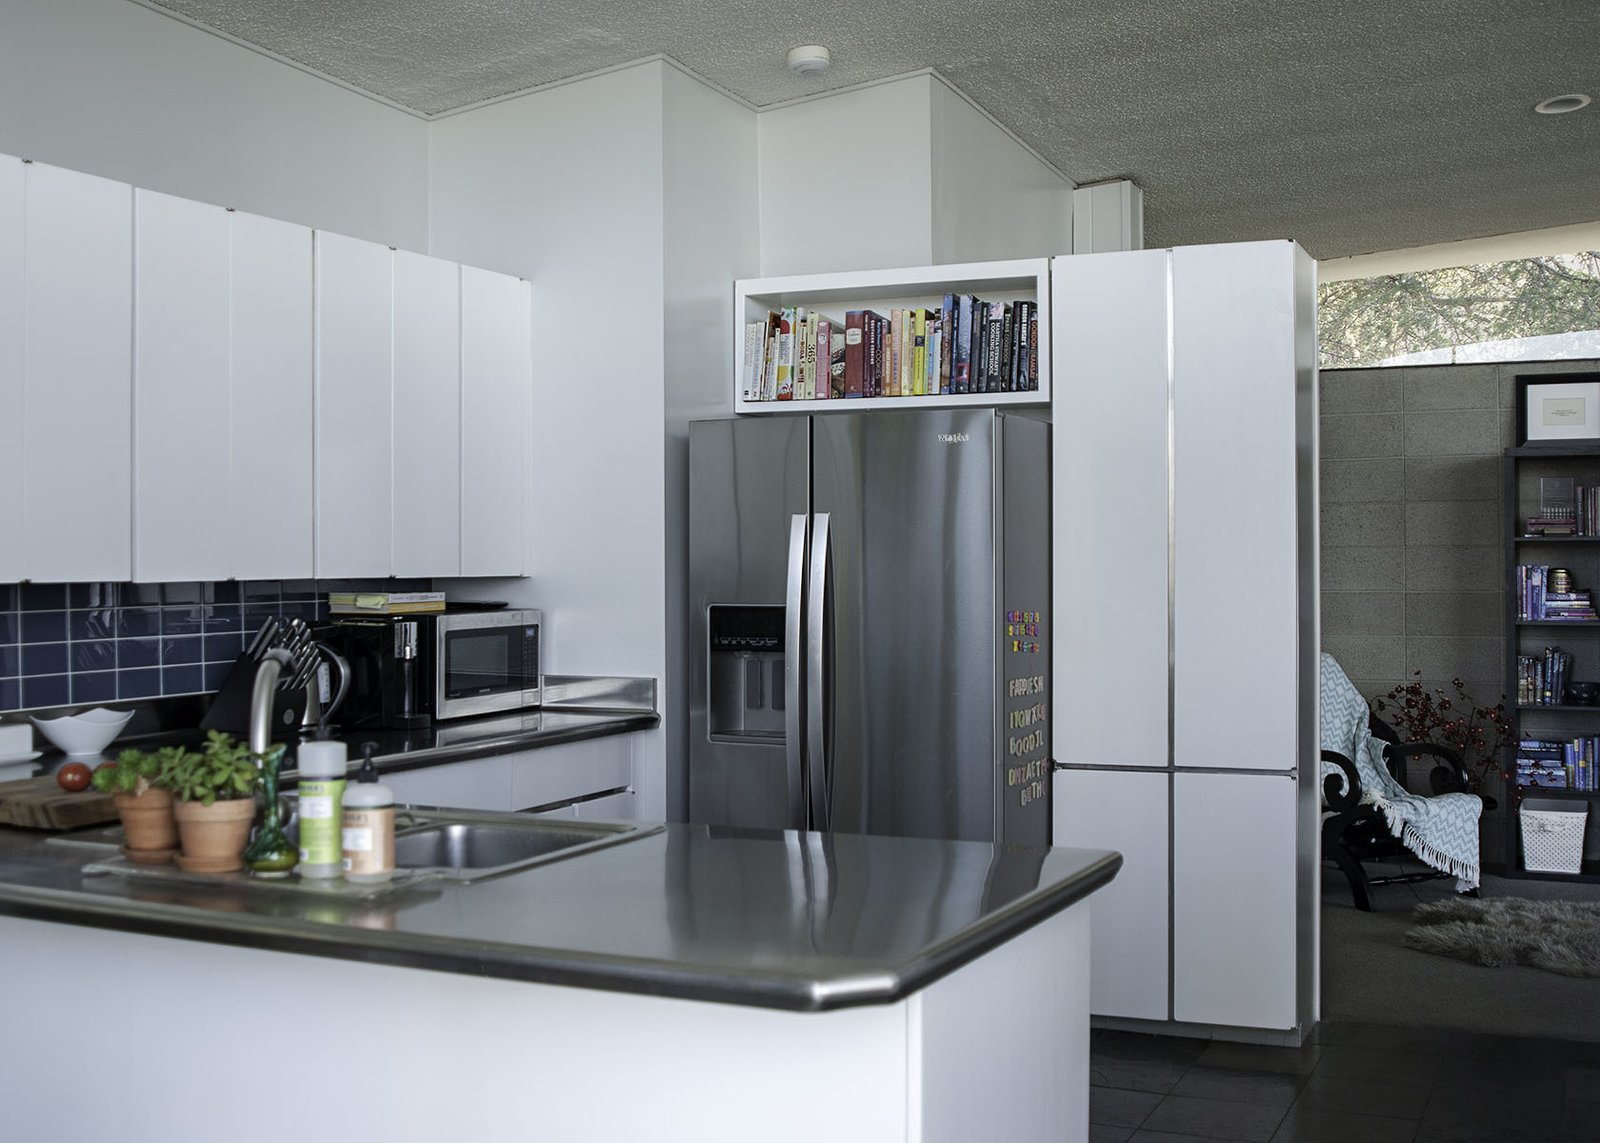 Kitchen, Refrigerator, Drop In Sink, Recessed Lighting, White Cabinet, Porcelain Tile Backsplashe, and Microwave The open kitchen has been recently updated.  Photo 6 of 13 in A 1958 Midcentury With Stunning L.A. Views Lists For $2.2M